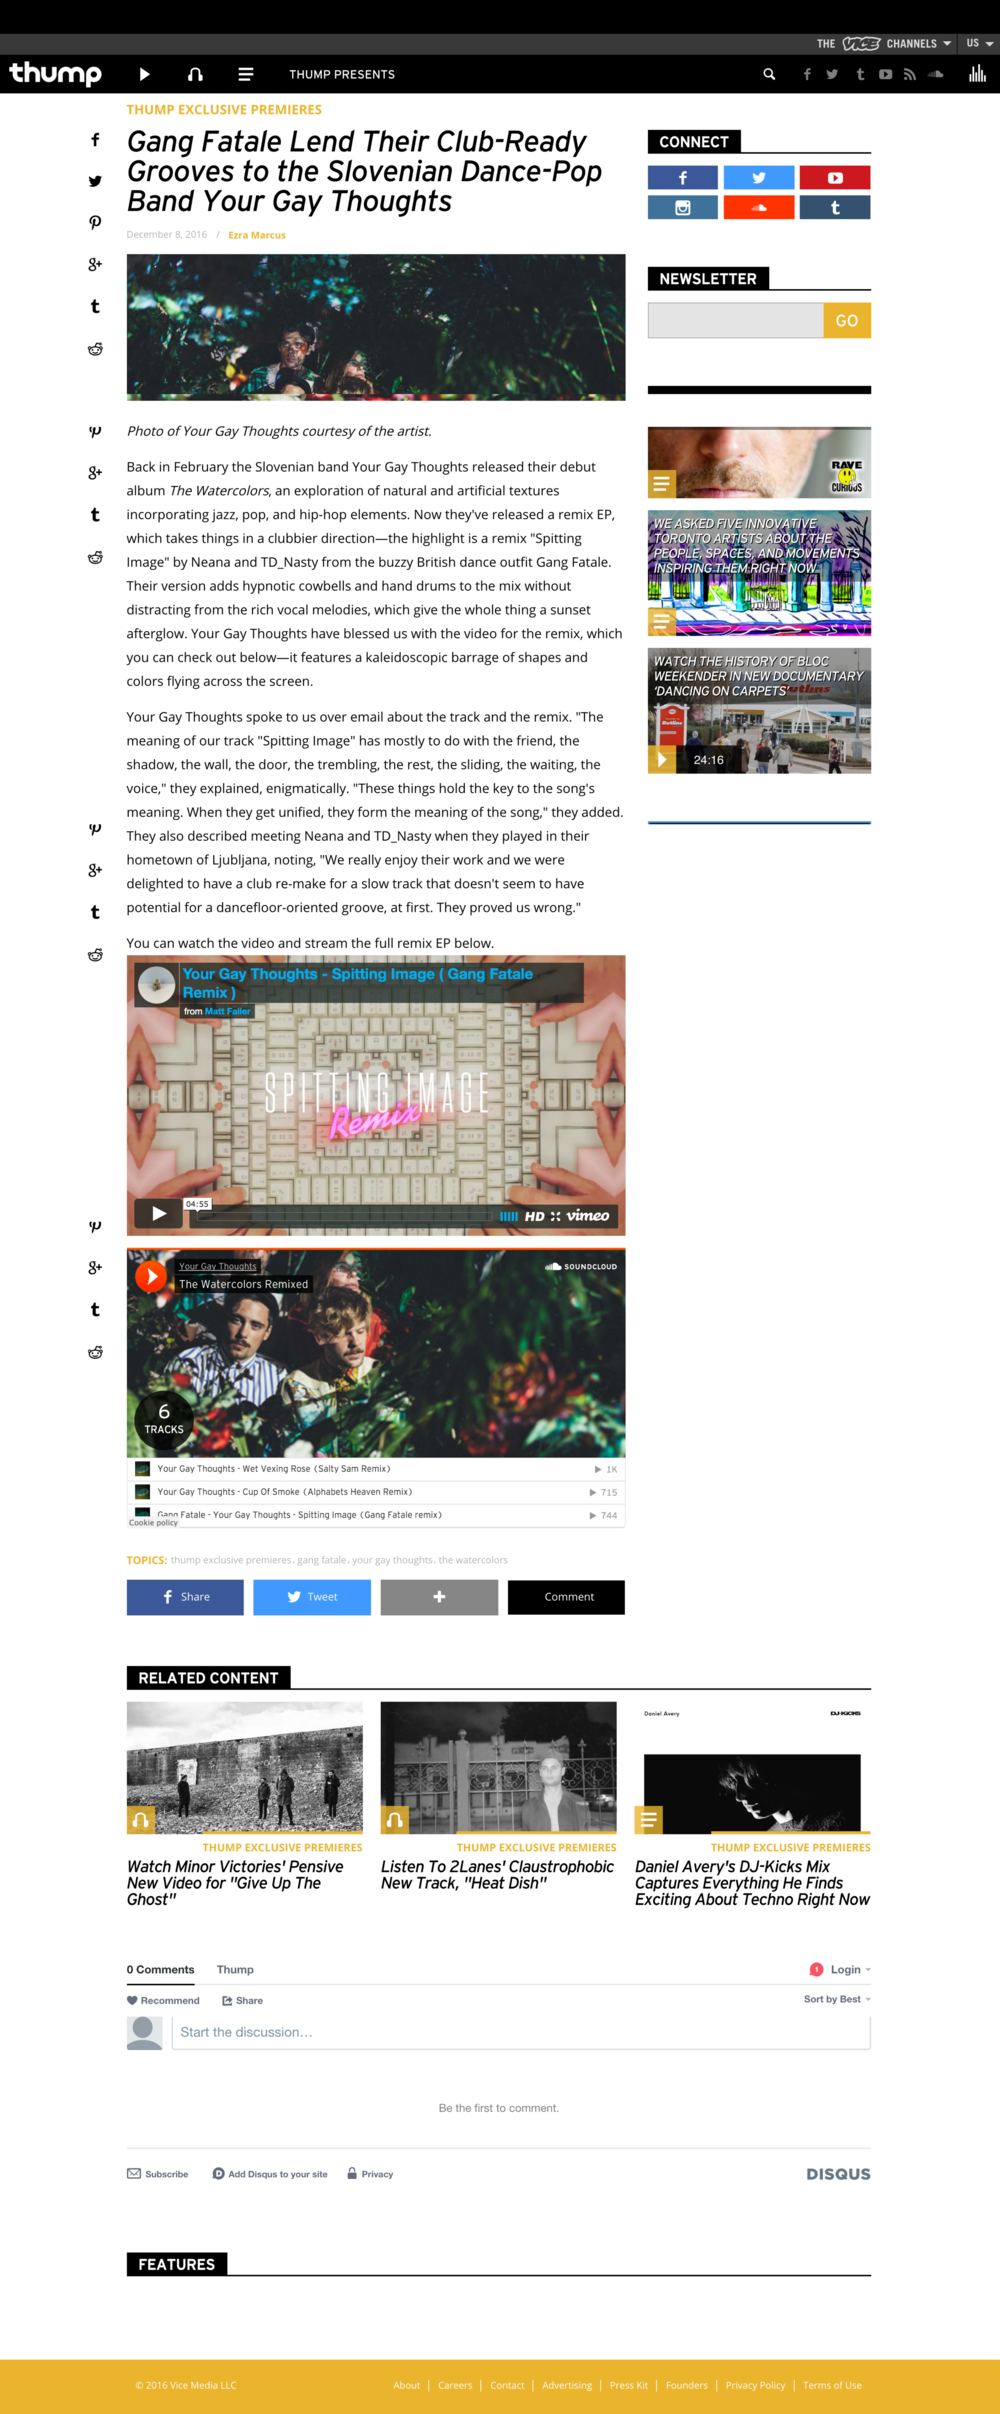 screencapture-thump-vice-en_us-article-gang-fatale-your-gay-thoughts-video-1481840363513.png